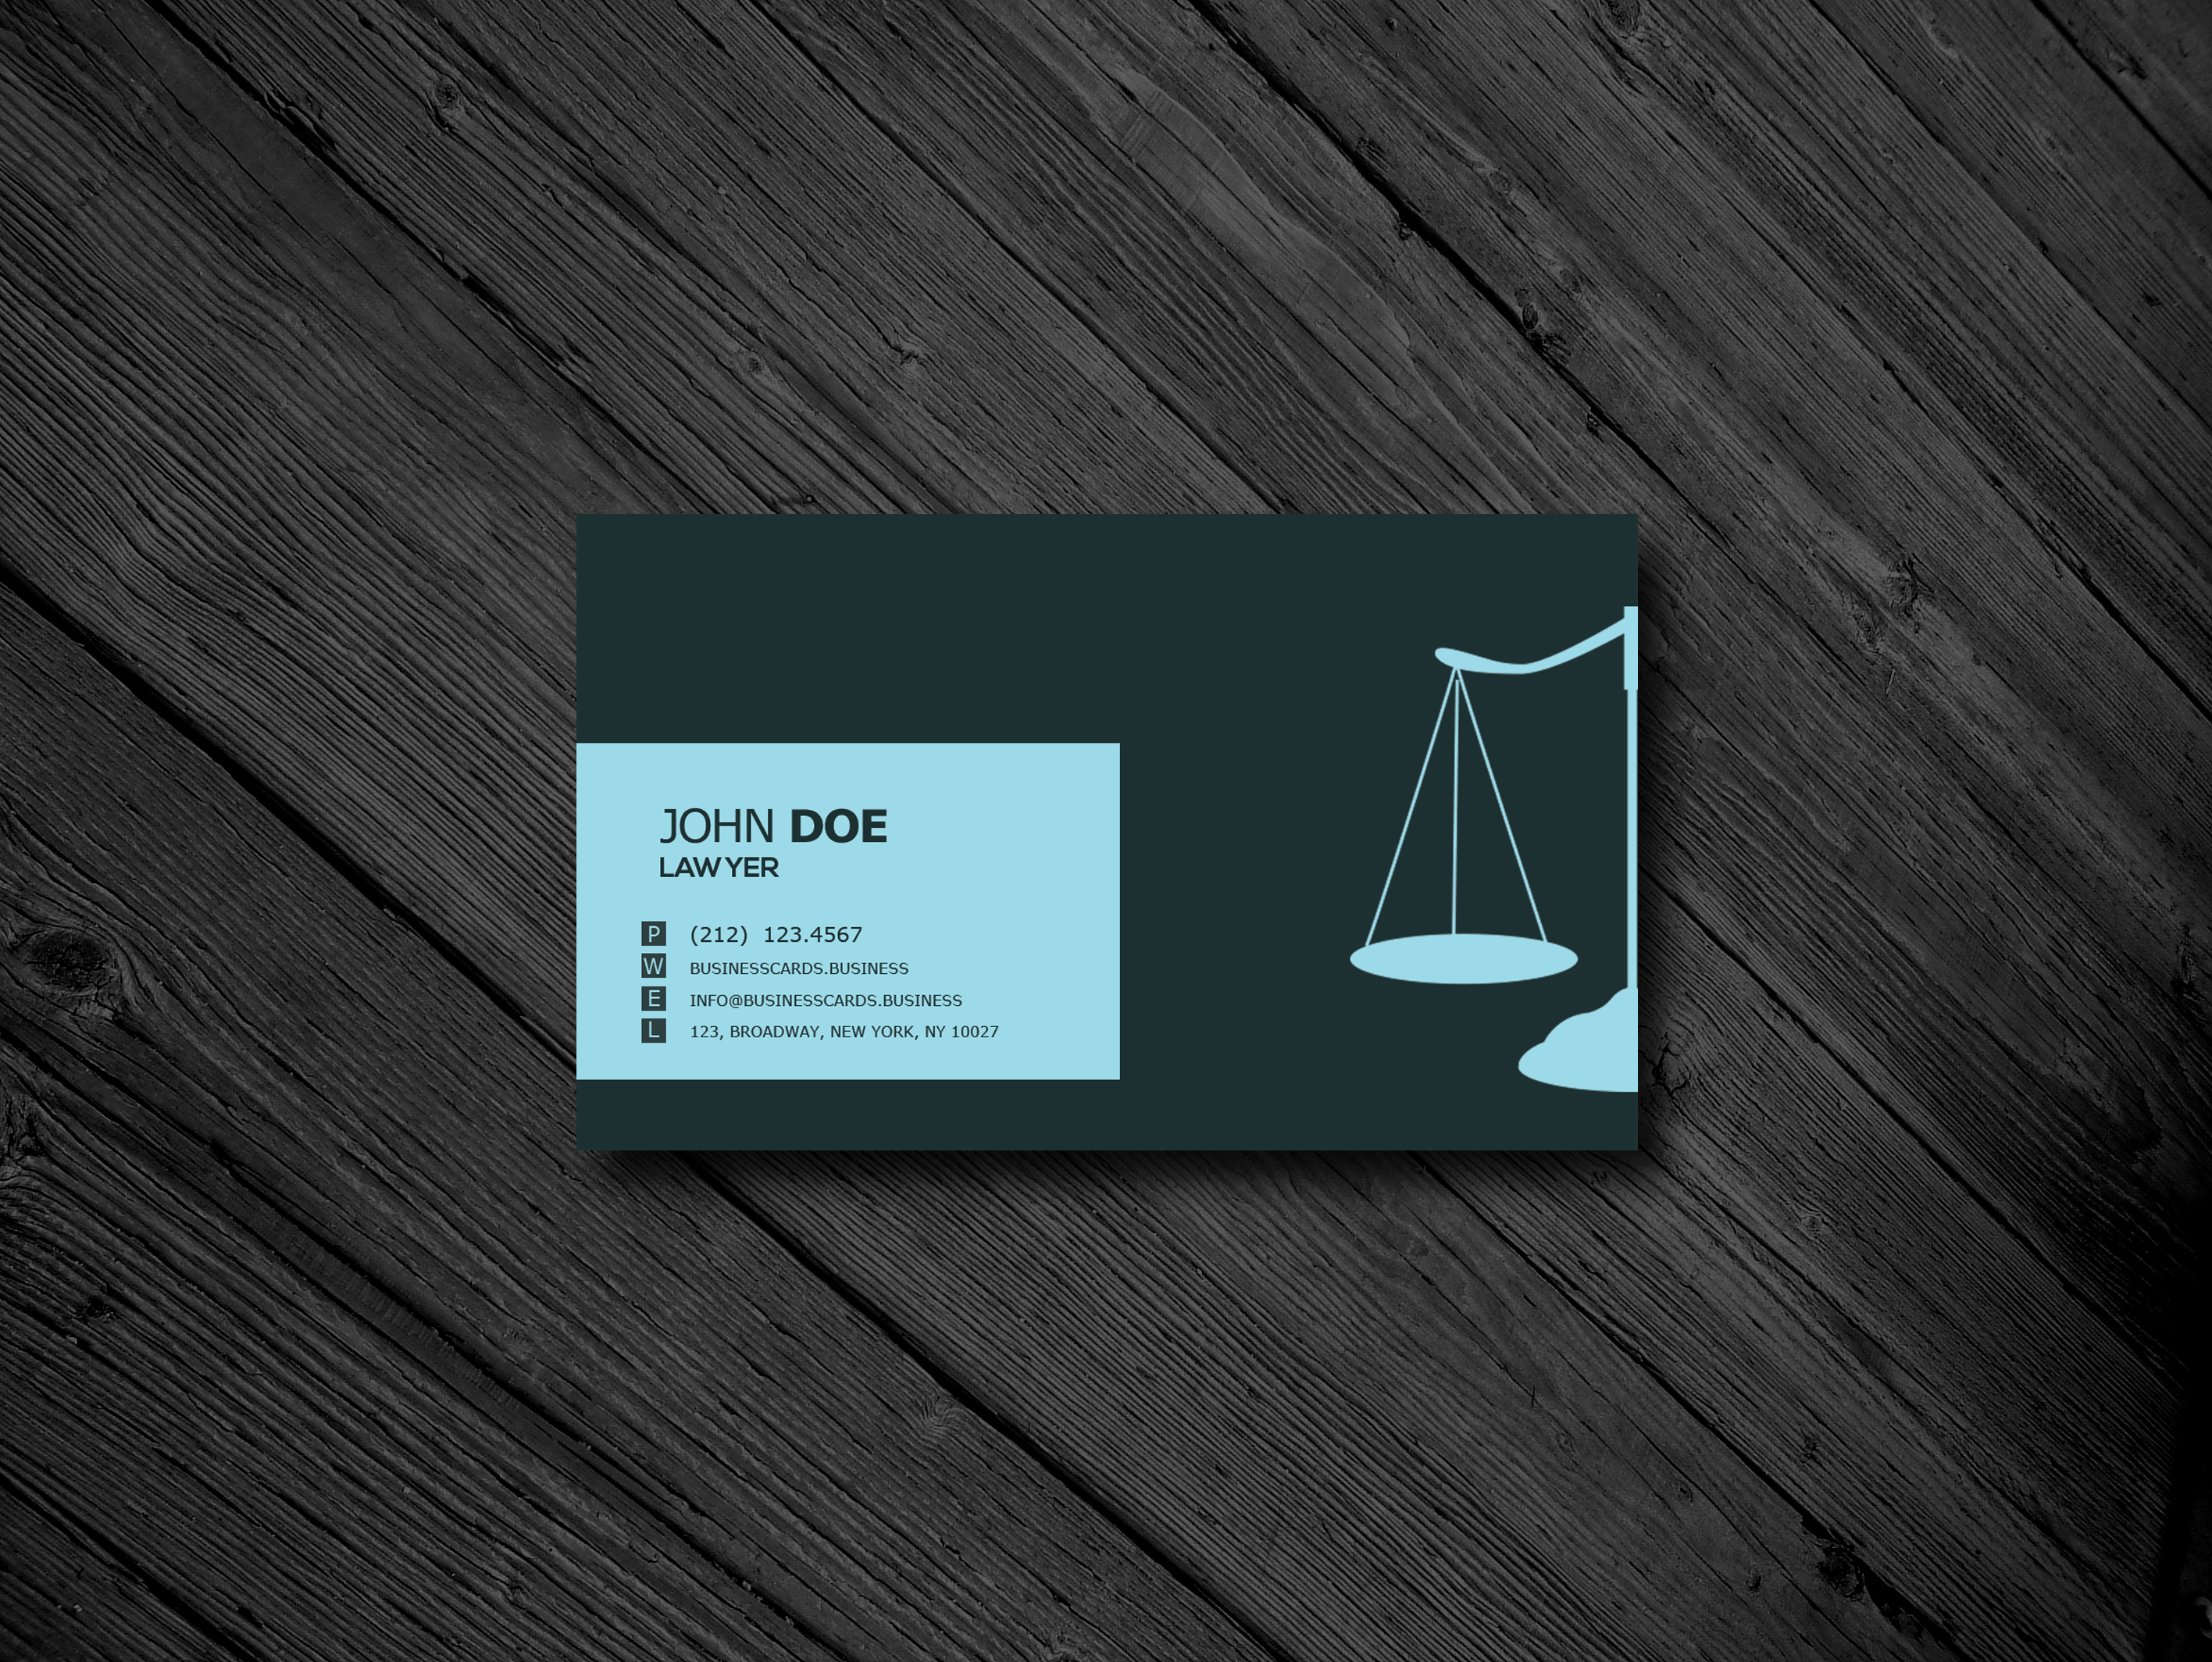 Free business card templates business cards templates free lawyer business card psd template fbccfo Images